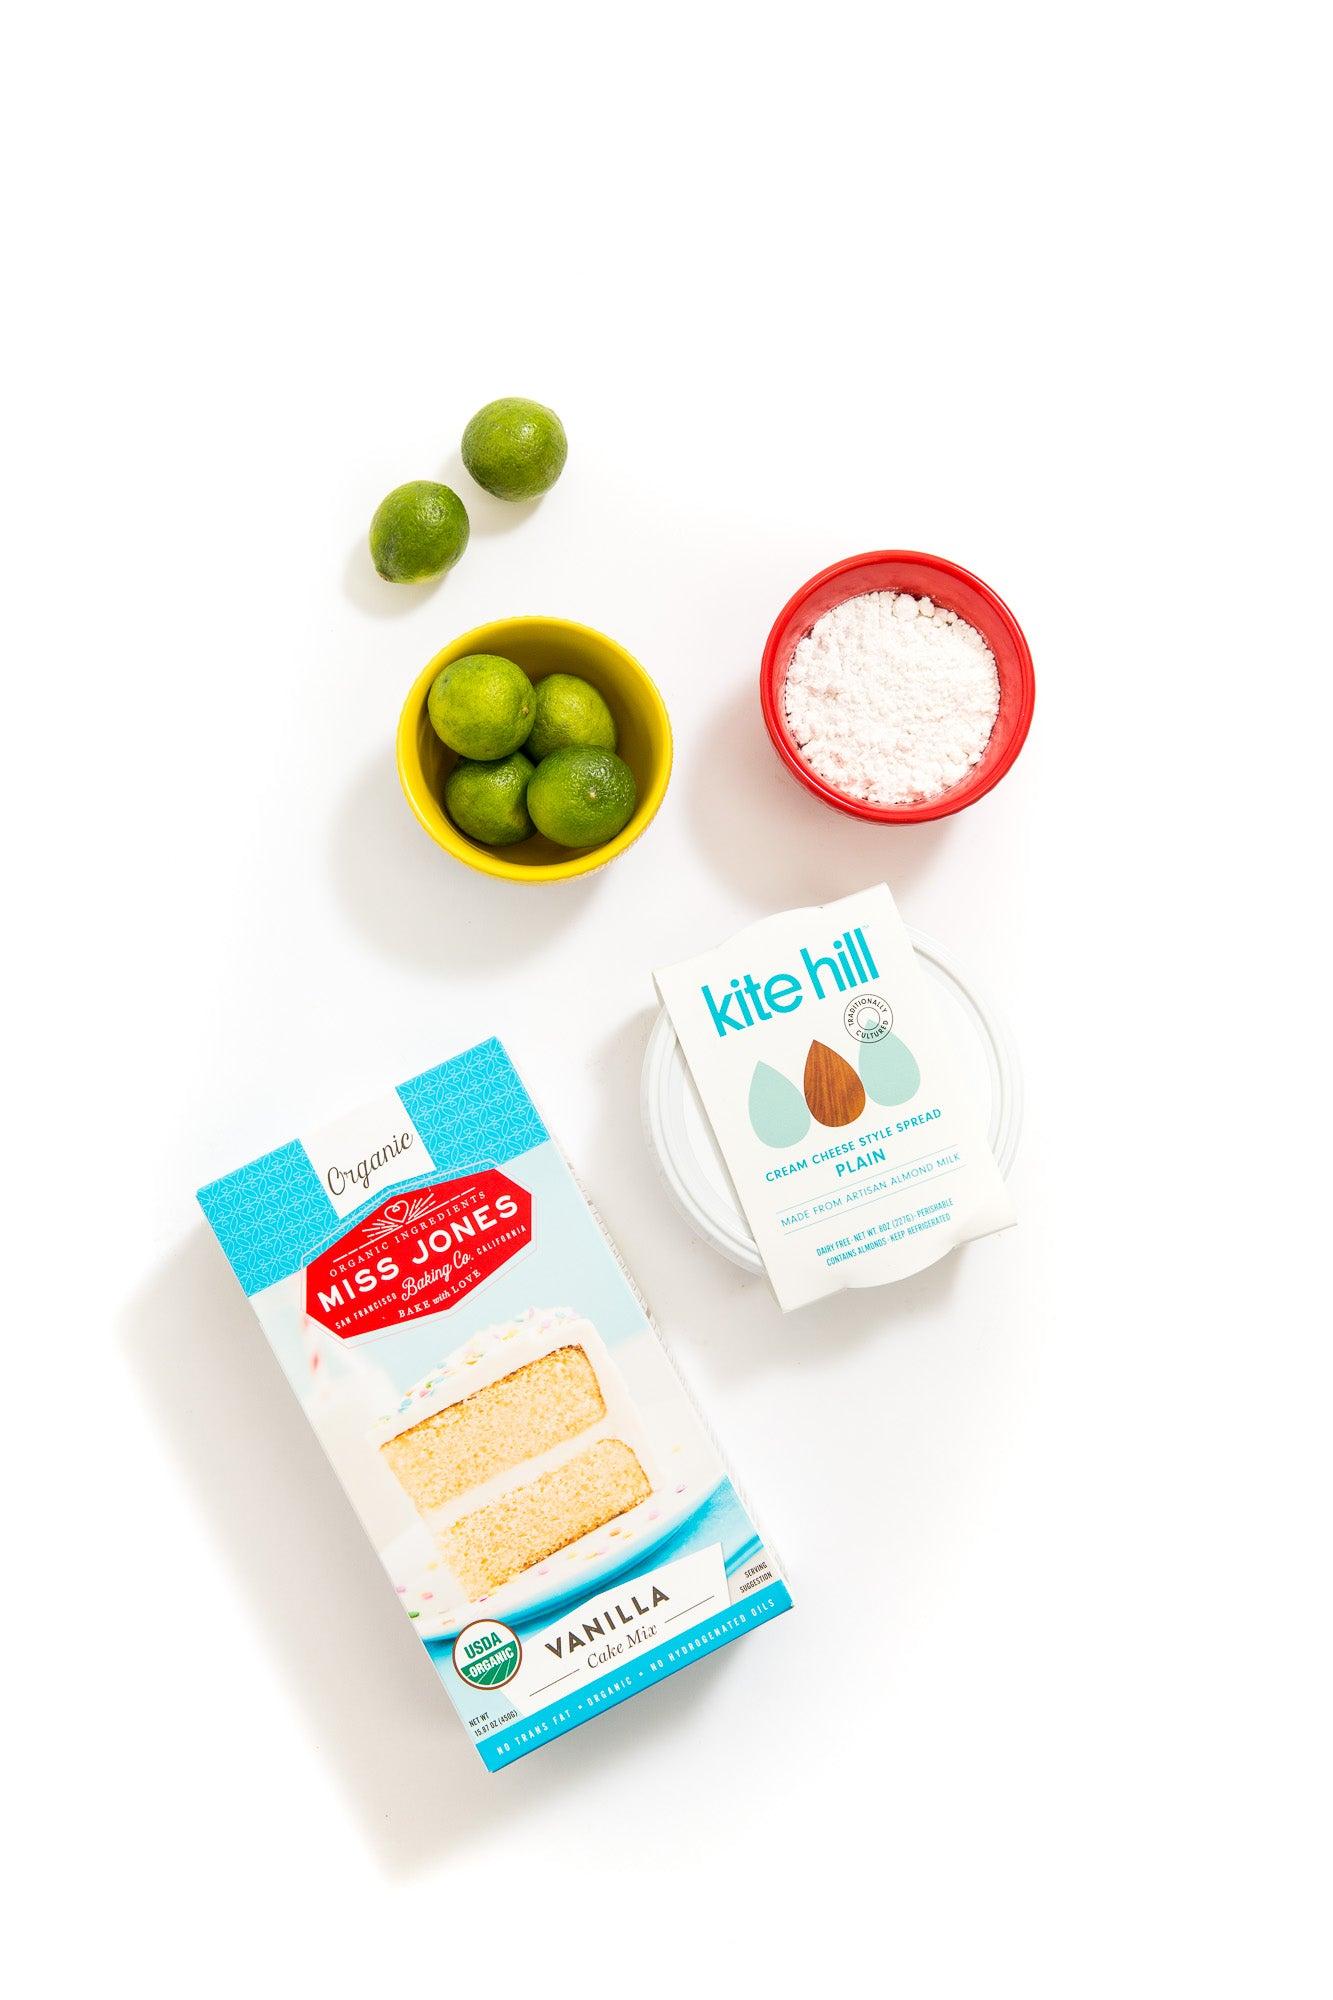 Image from above of a box of Miss Jones Vanilla Cake mix next to a bowl of limes and a tub of Kite Hill Cream Cheese Spread for Miss Jones Baking Co Key Lime Margarita Bars Recipe